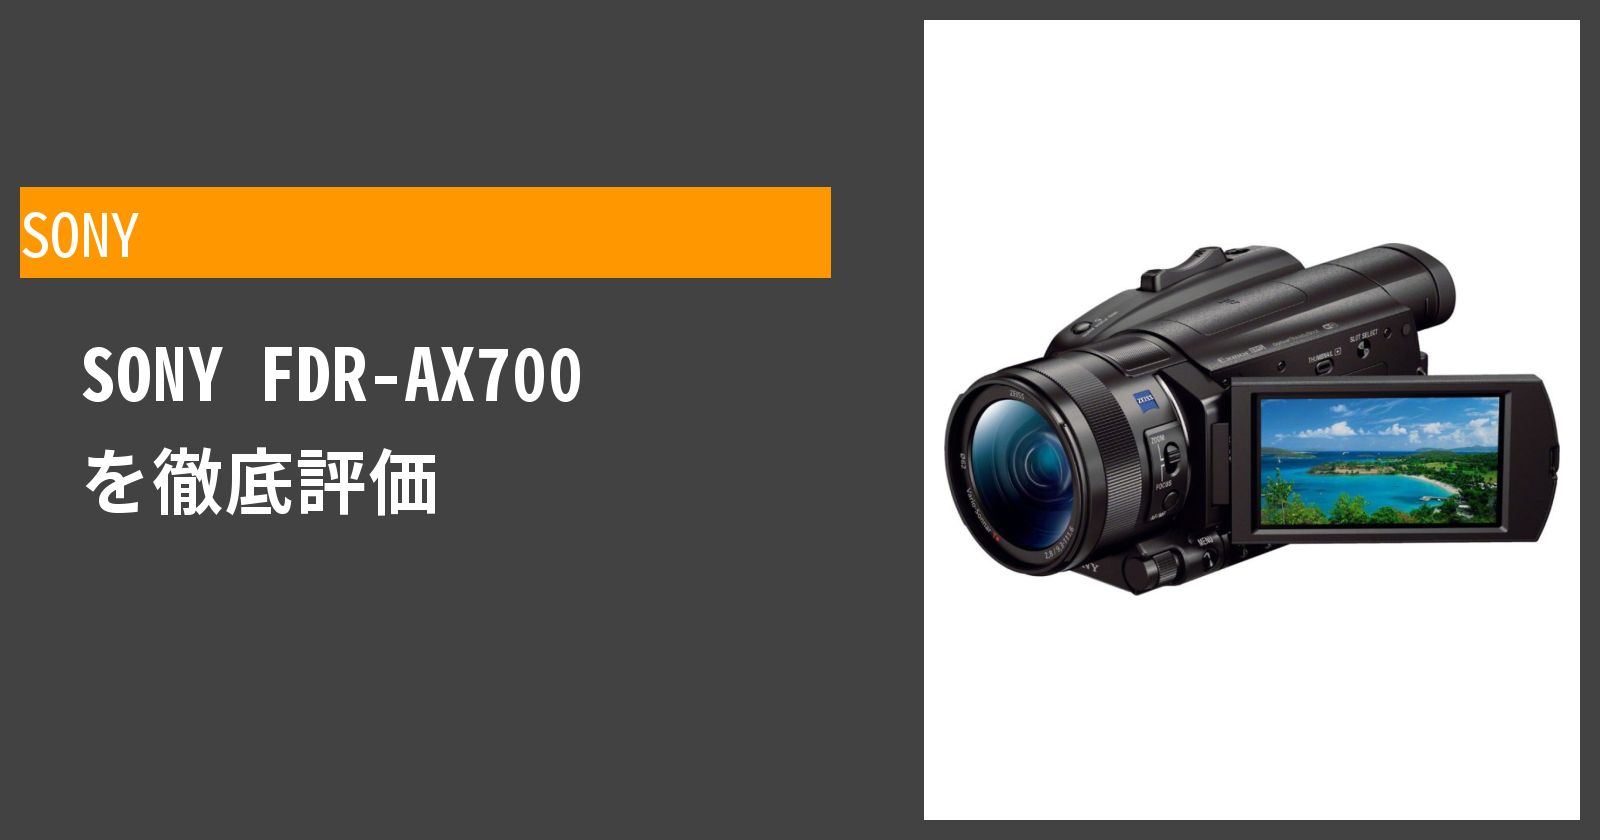 FDR-AX700を徹底評価